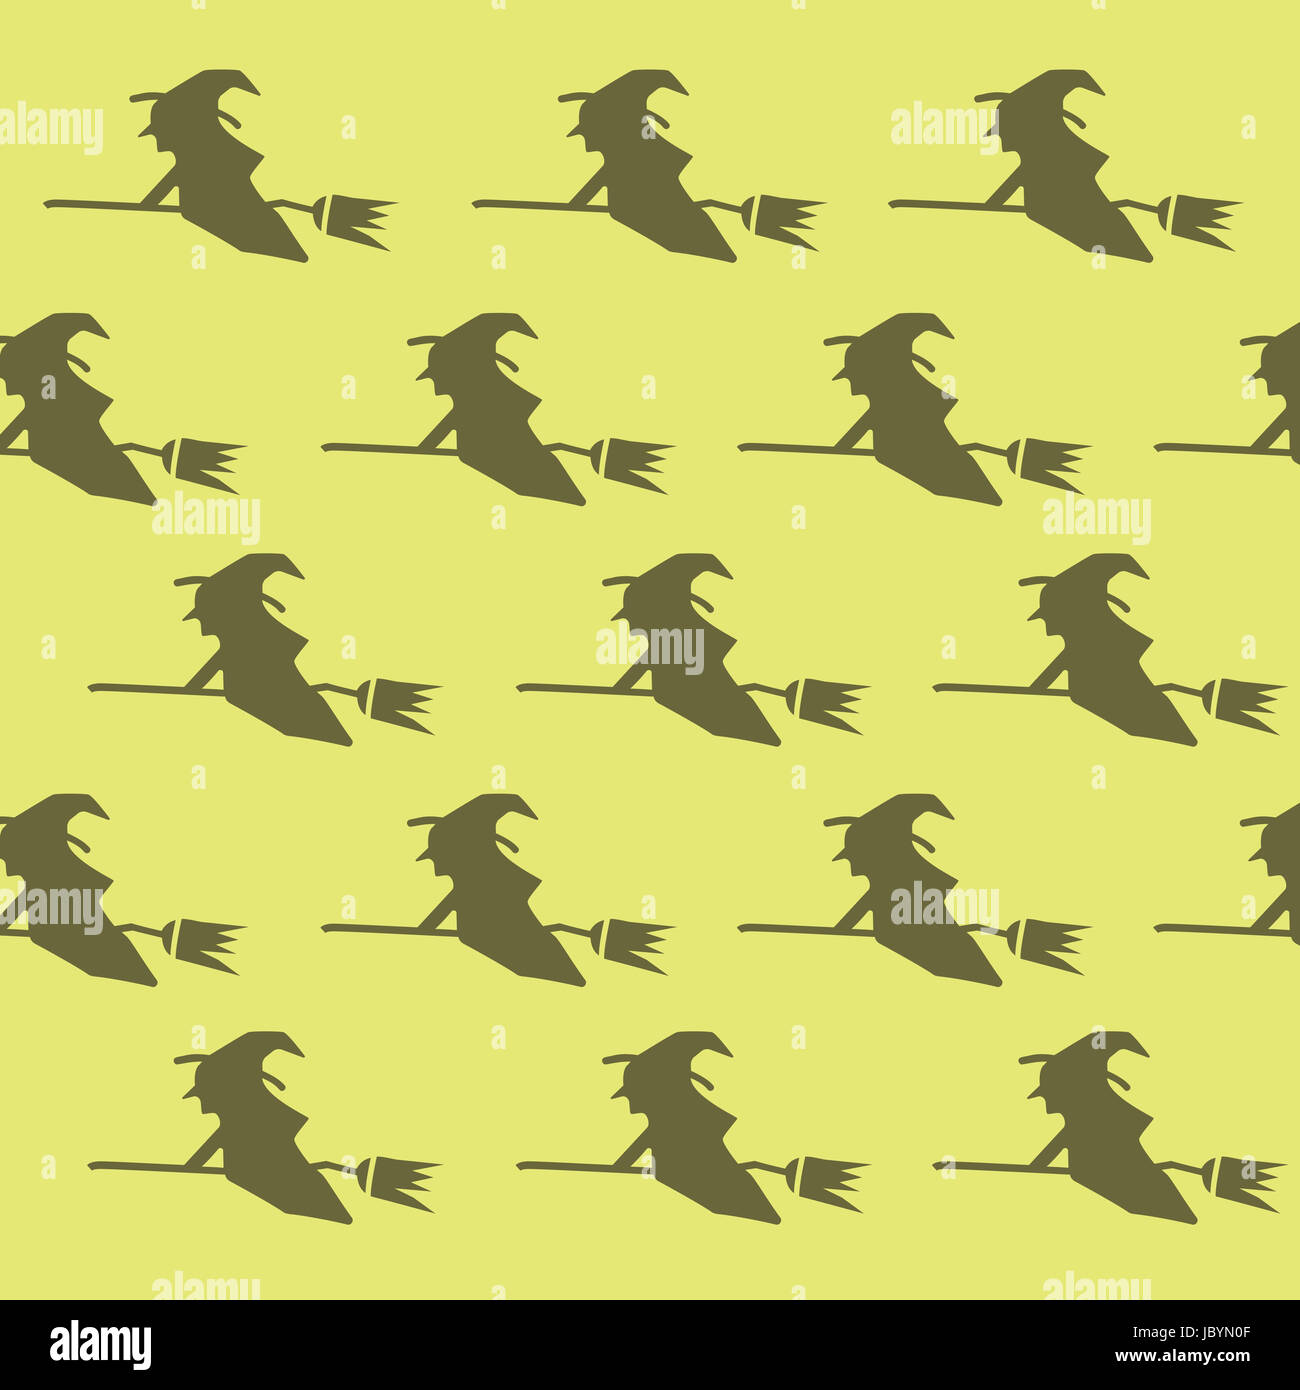 an illustration pattern of spooky flying witch halloween theme on plain background